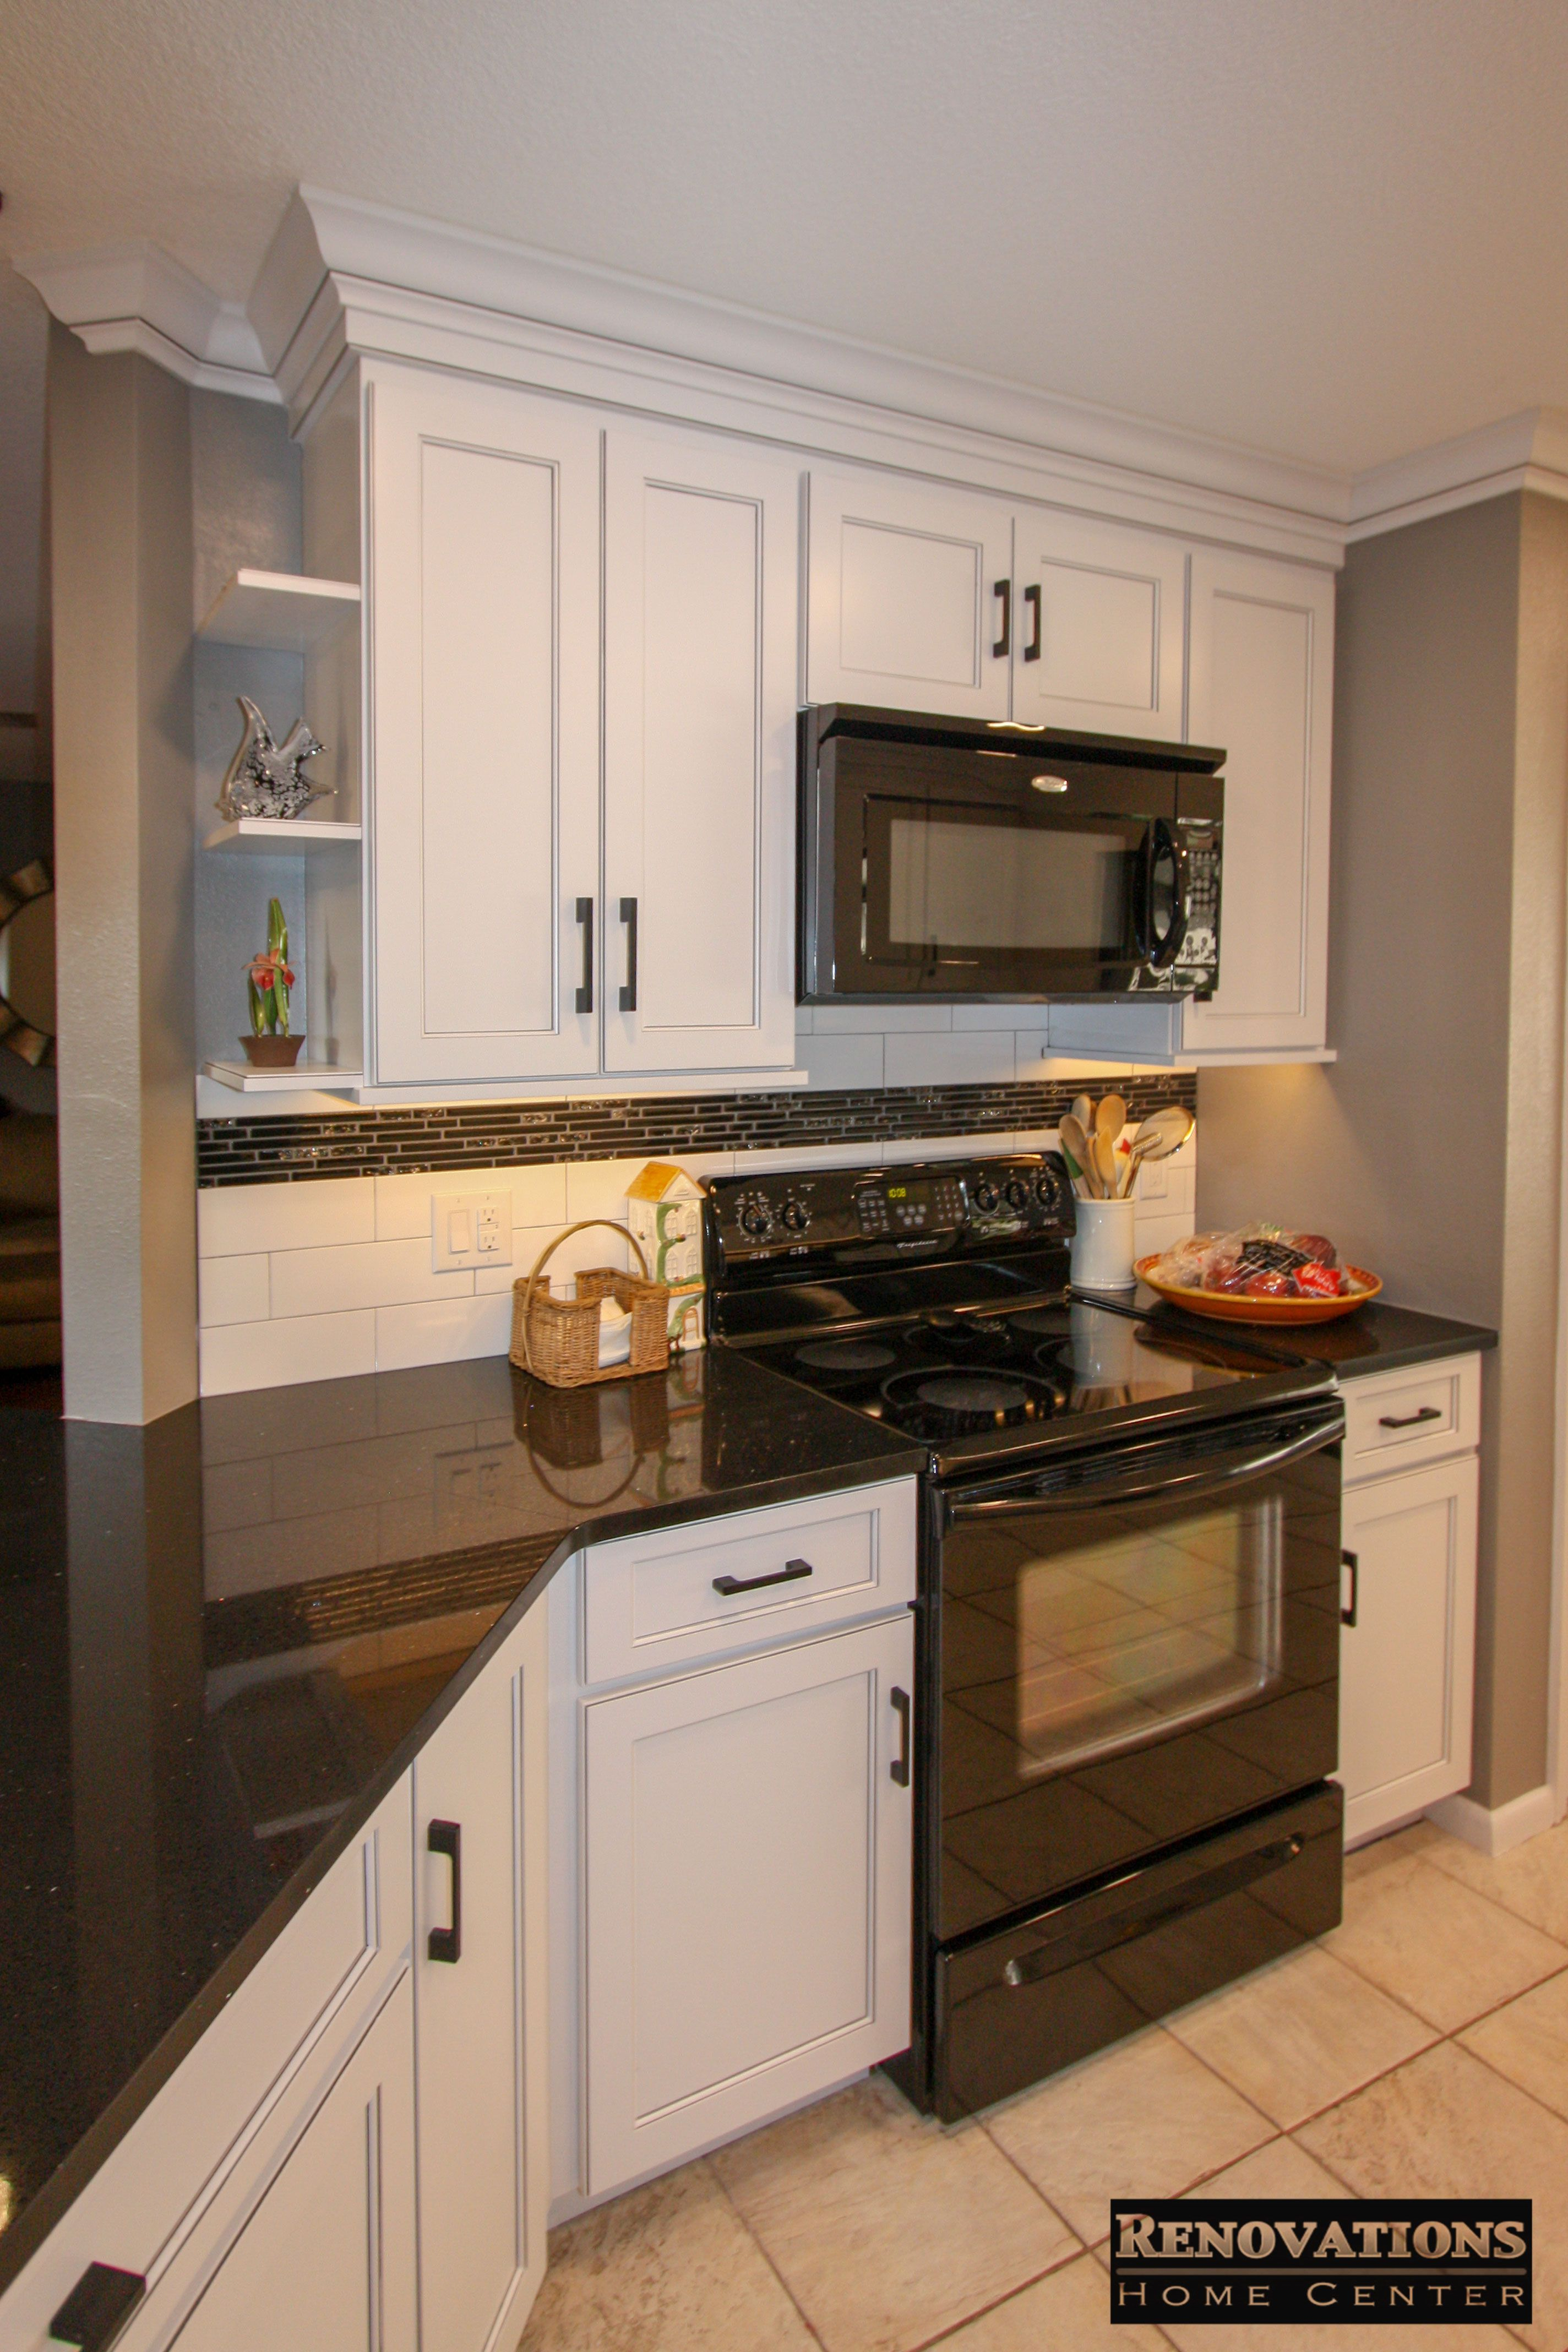 Full Kitchen Renovation For Our Client In Palm Harbor We Replaced